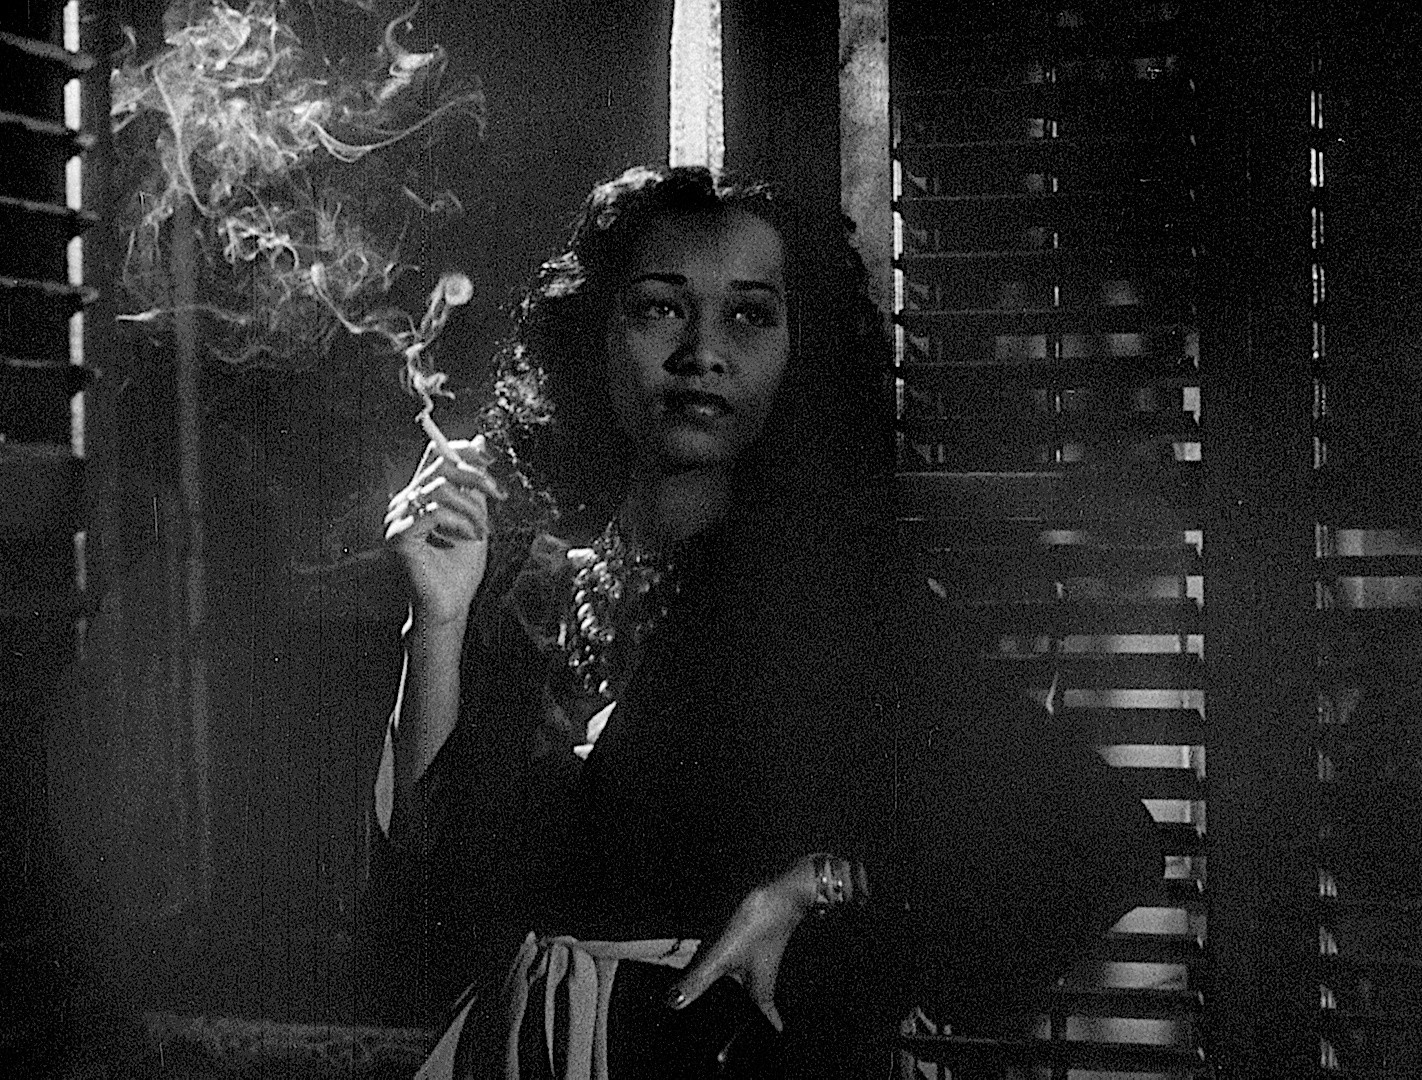 Dirty Gertie from Harlem U.S.A. 1946. USA. Directed by Oscar Micheaux. Courtesy Kino Lorber